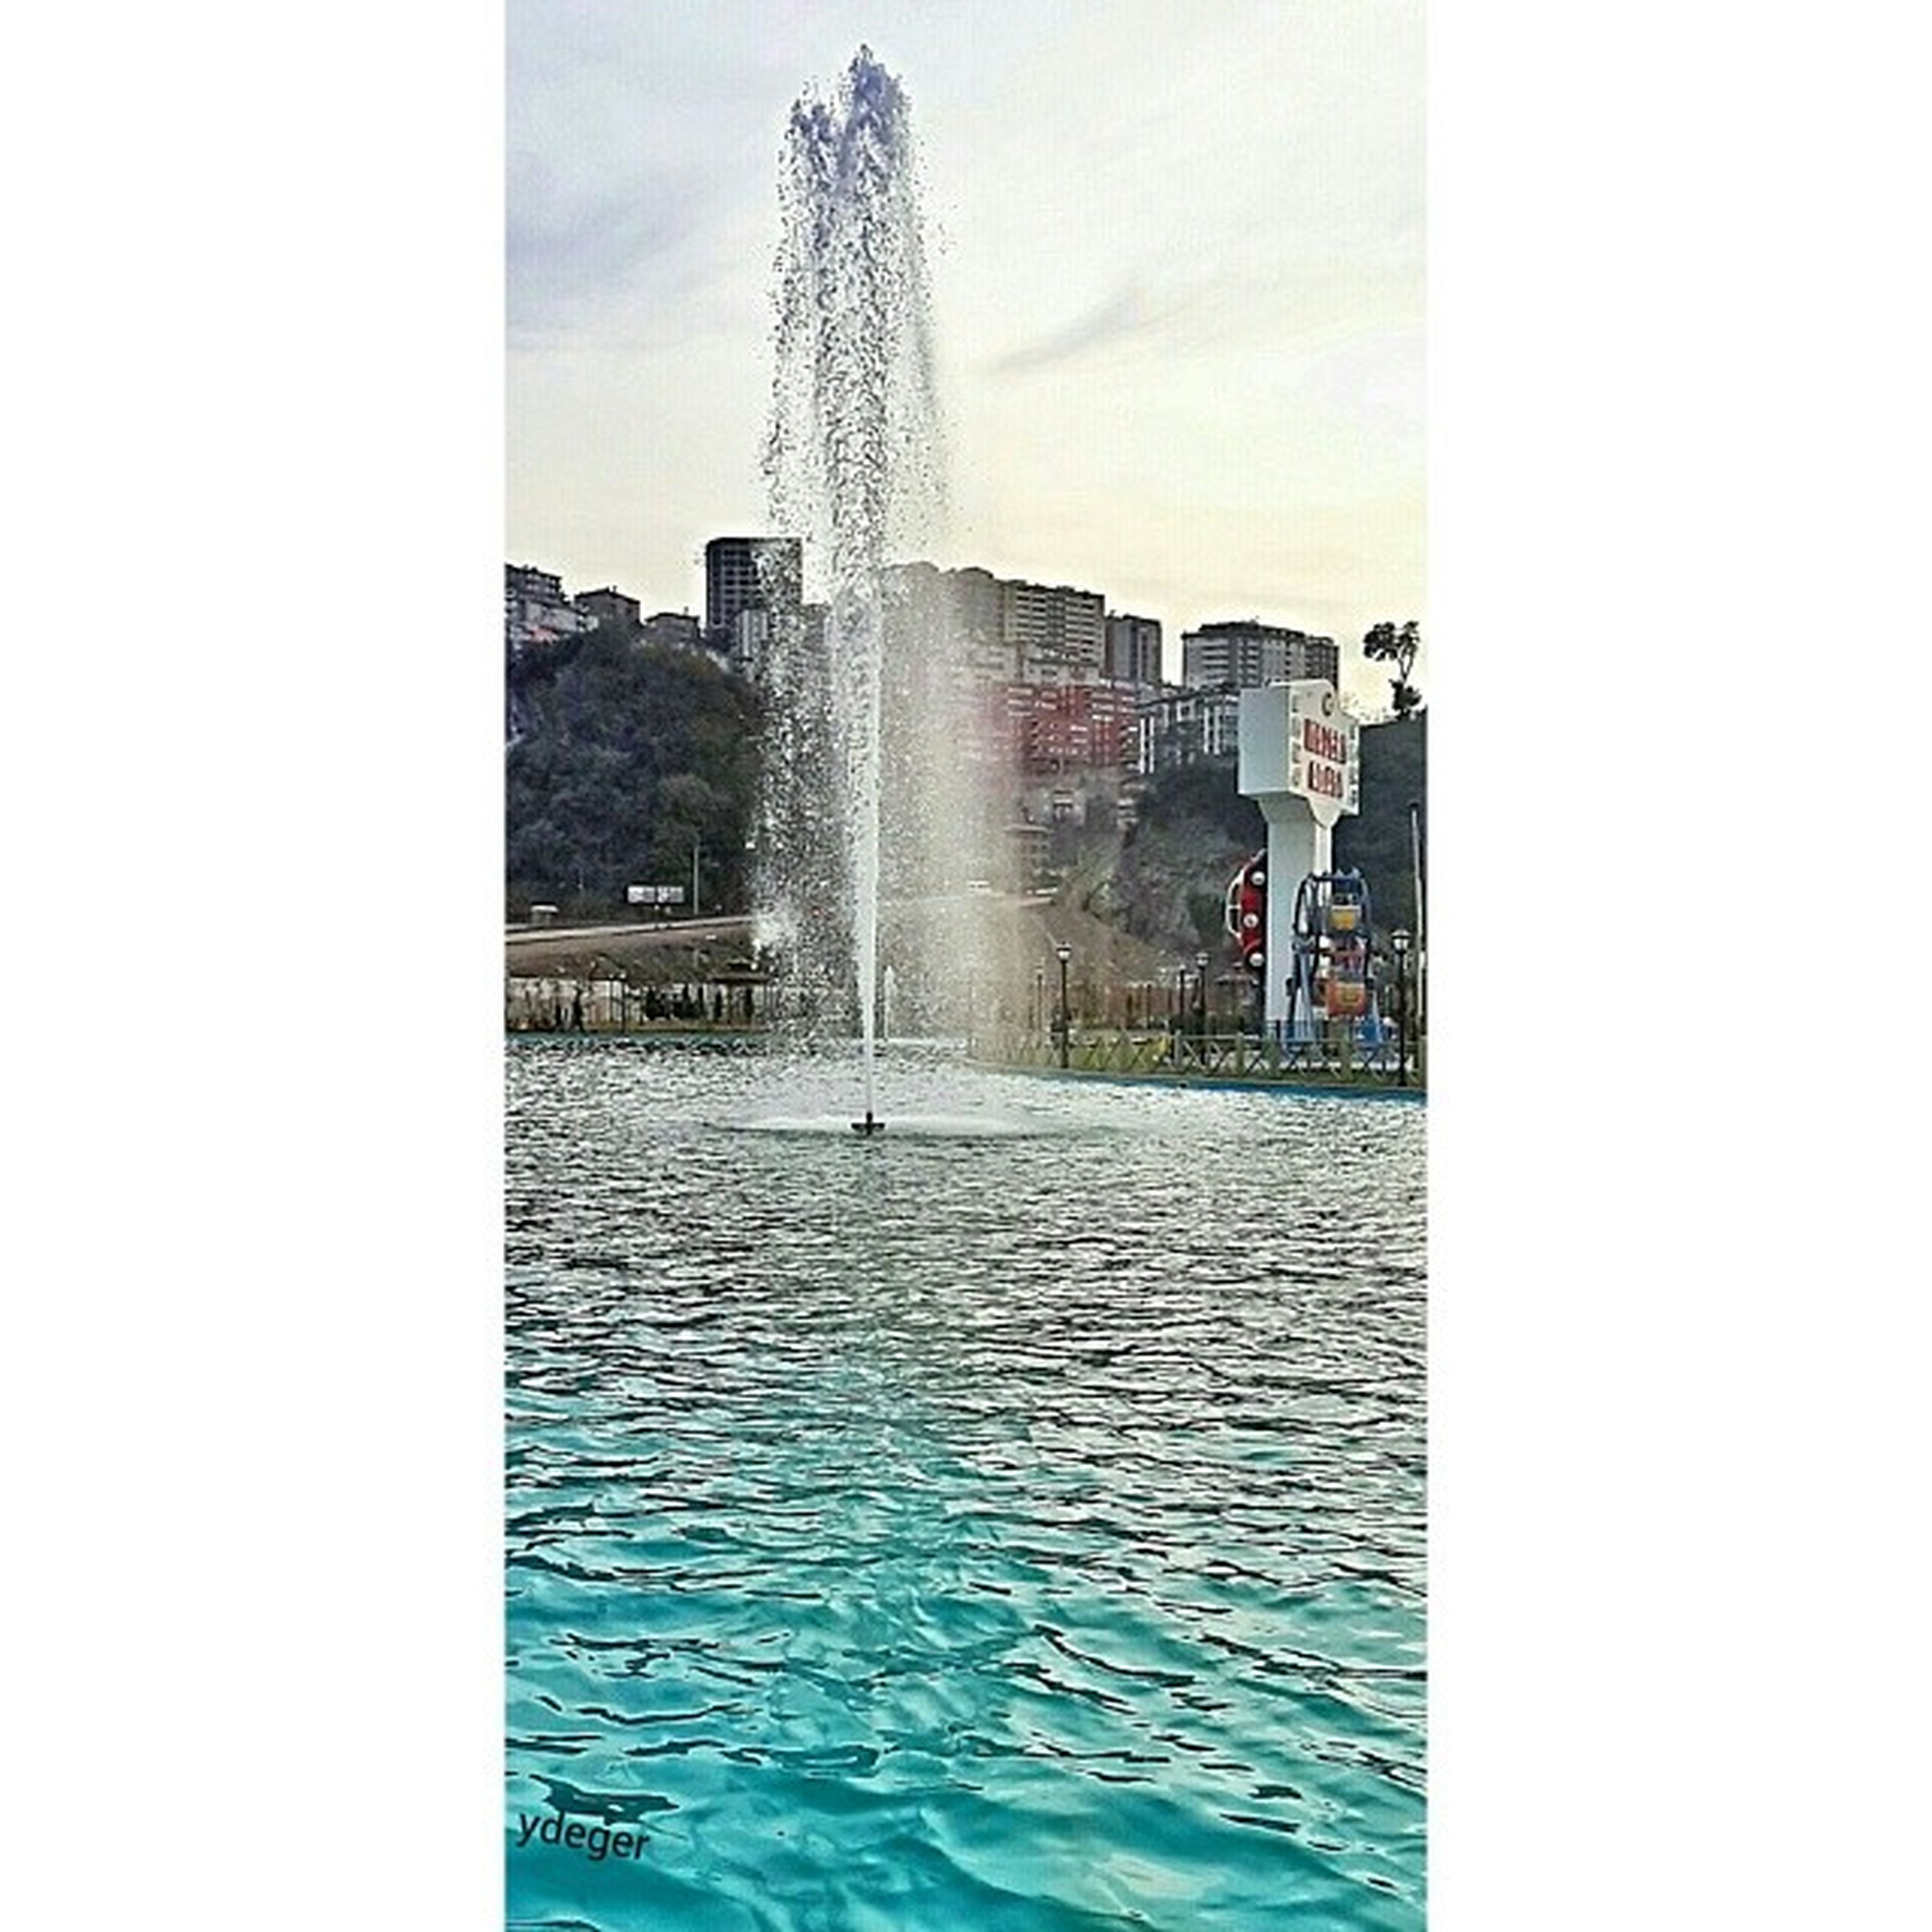 water, architecture, built structure, building exterior, fountain, famous place, waterfront, city, travel destinations, motion, splashing, spraying, international landmark, art and craft, tourism, sky, reflection, transfer print, auto post production filter, capital cities